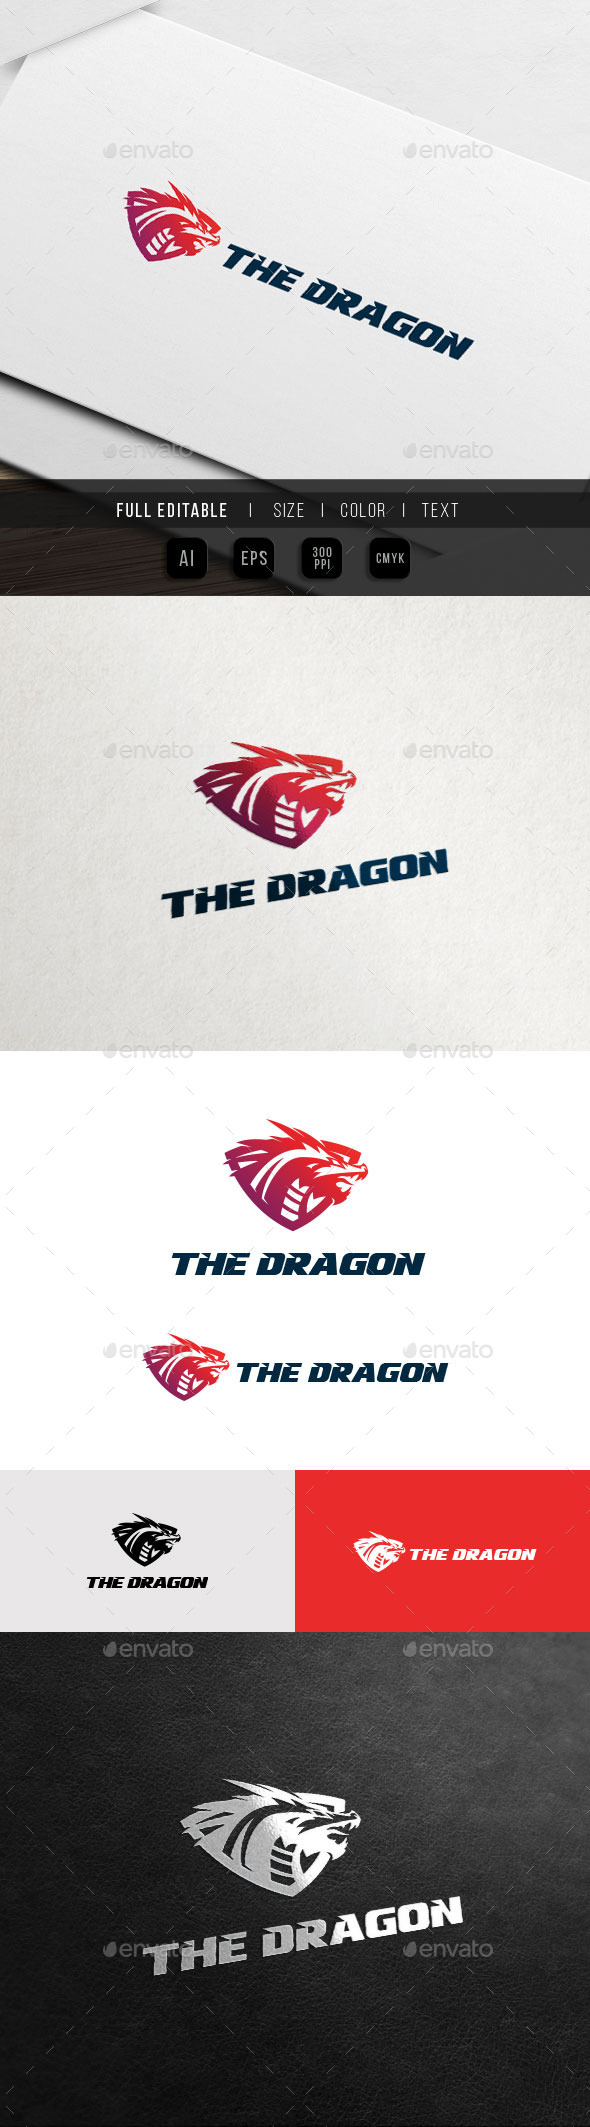 Dragon Shield - Game Team Logo - Crests Logo Templates